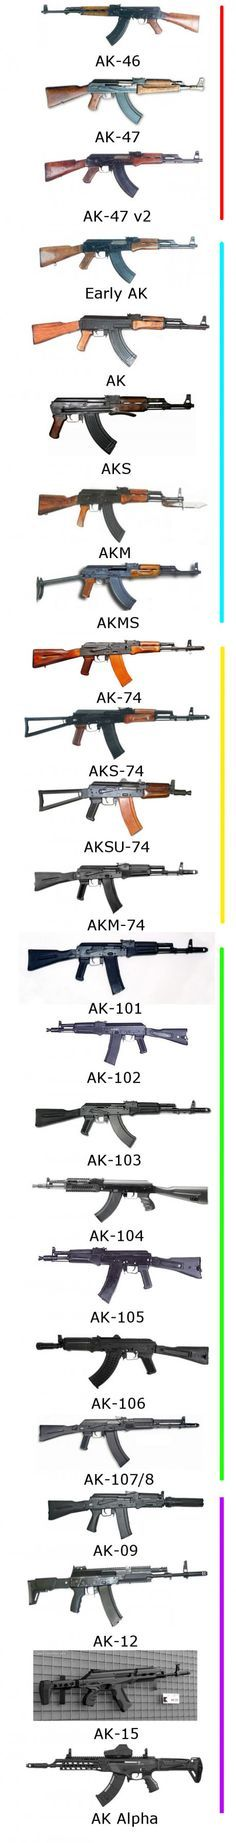 """Not only """"AK-47"""" ...there's soo many more to blame!!! Buy 'em now before Hillary makes it impossible to!"""